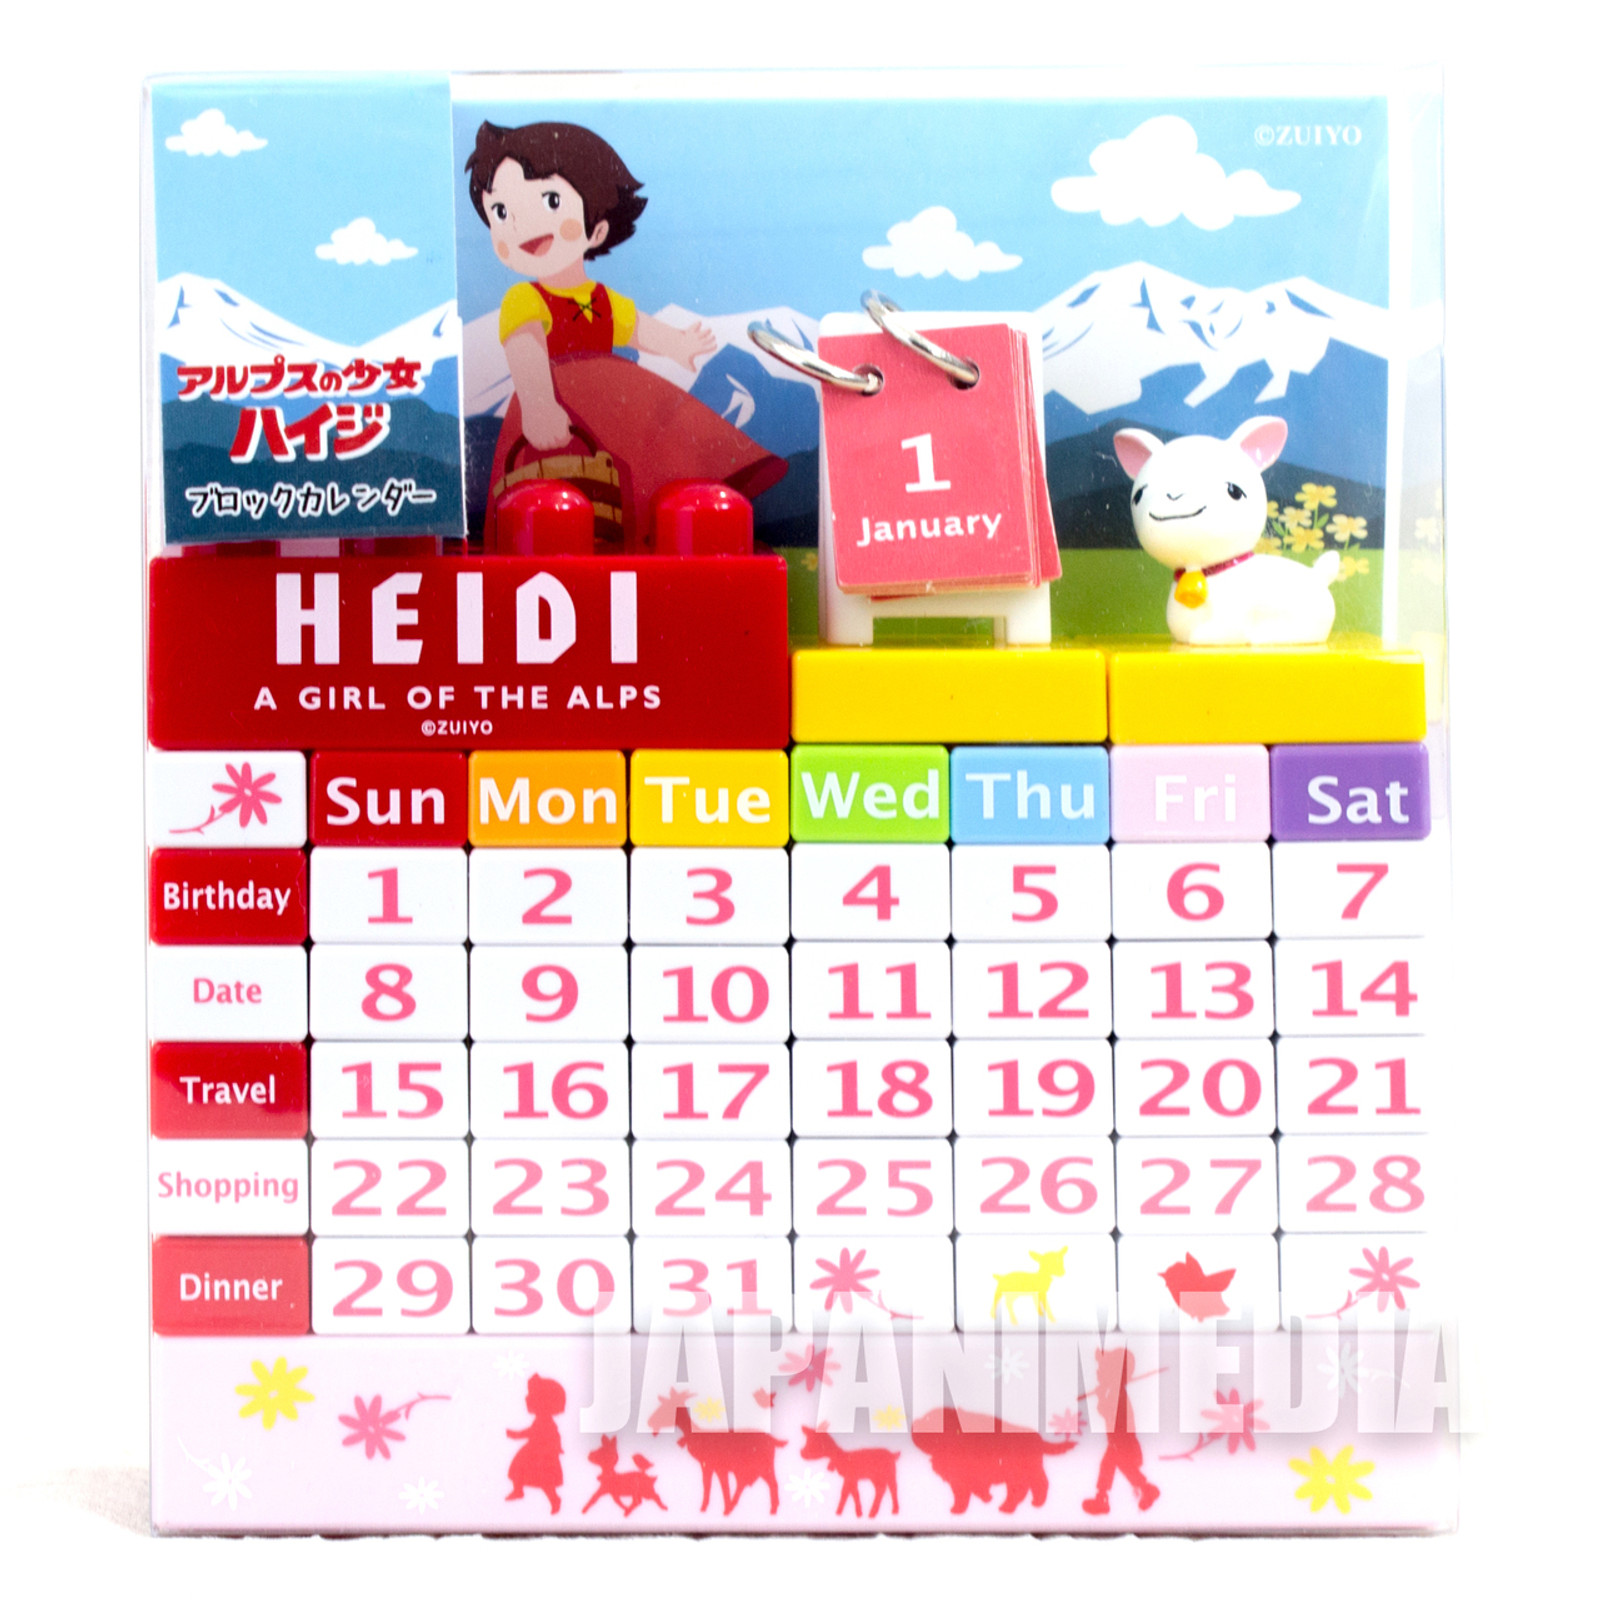 Heidi Girl of the Alps Block Calendar JAPAN ANIME